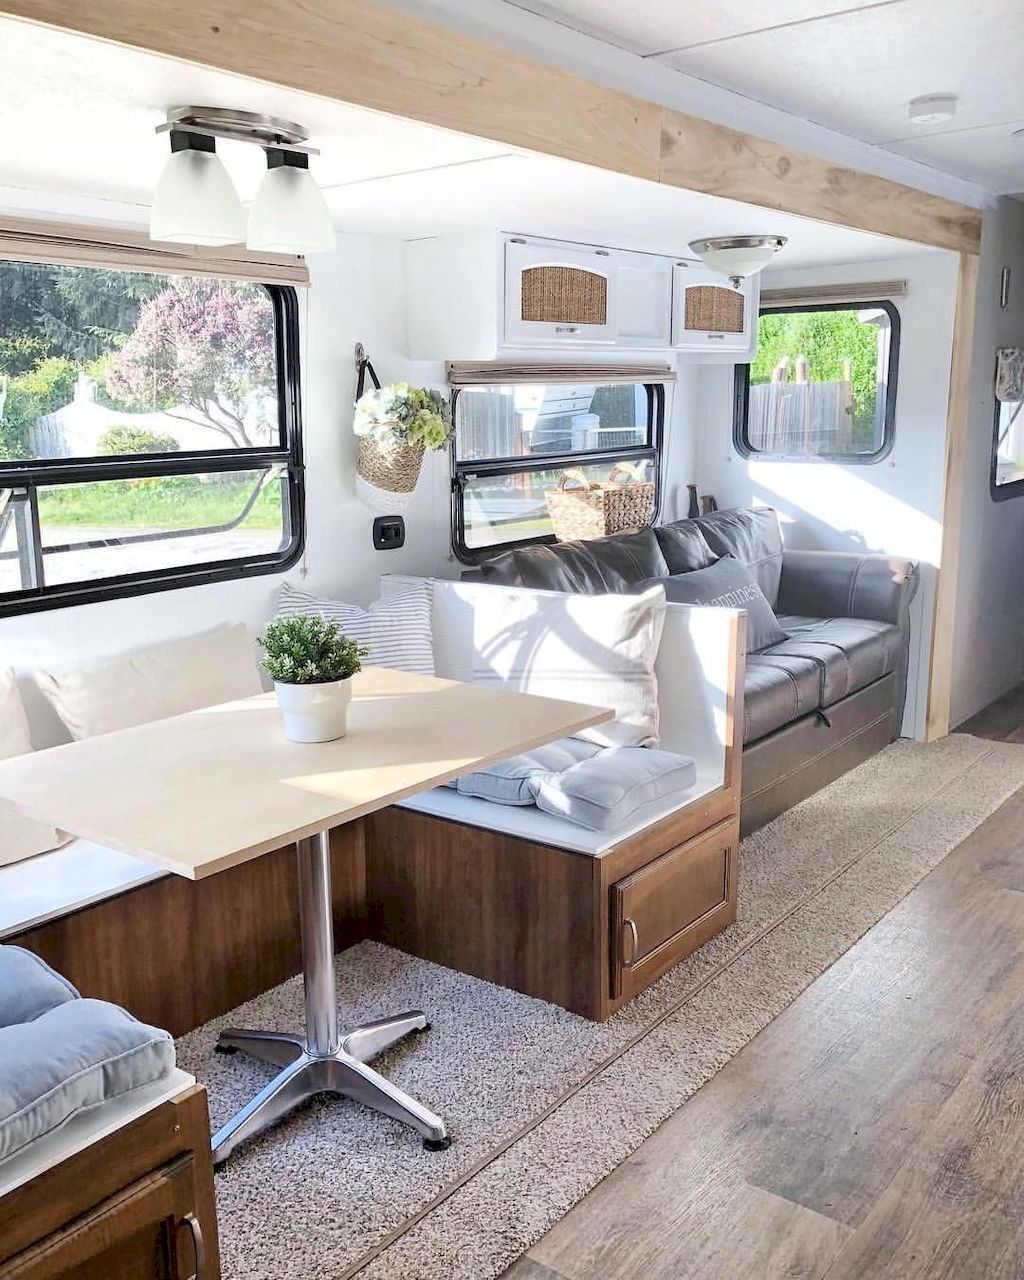 52 Small Bedroom Decorating Ideas That Have Major Impressions: A Major Folding Camper Might Have Pretty A Few Commonplace